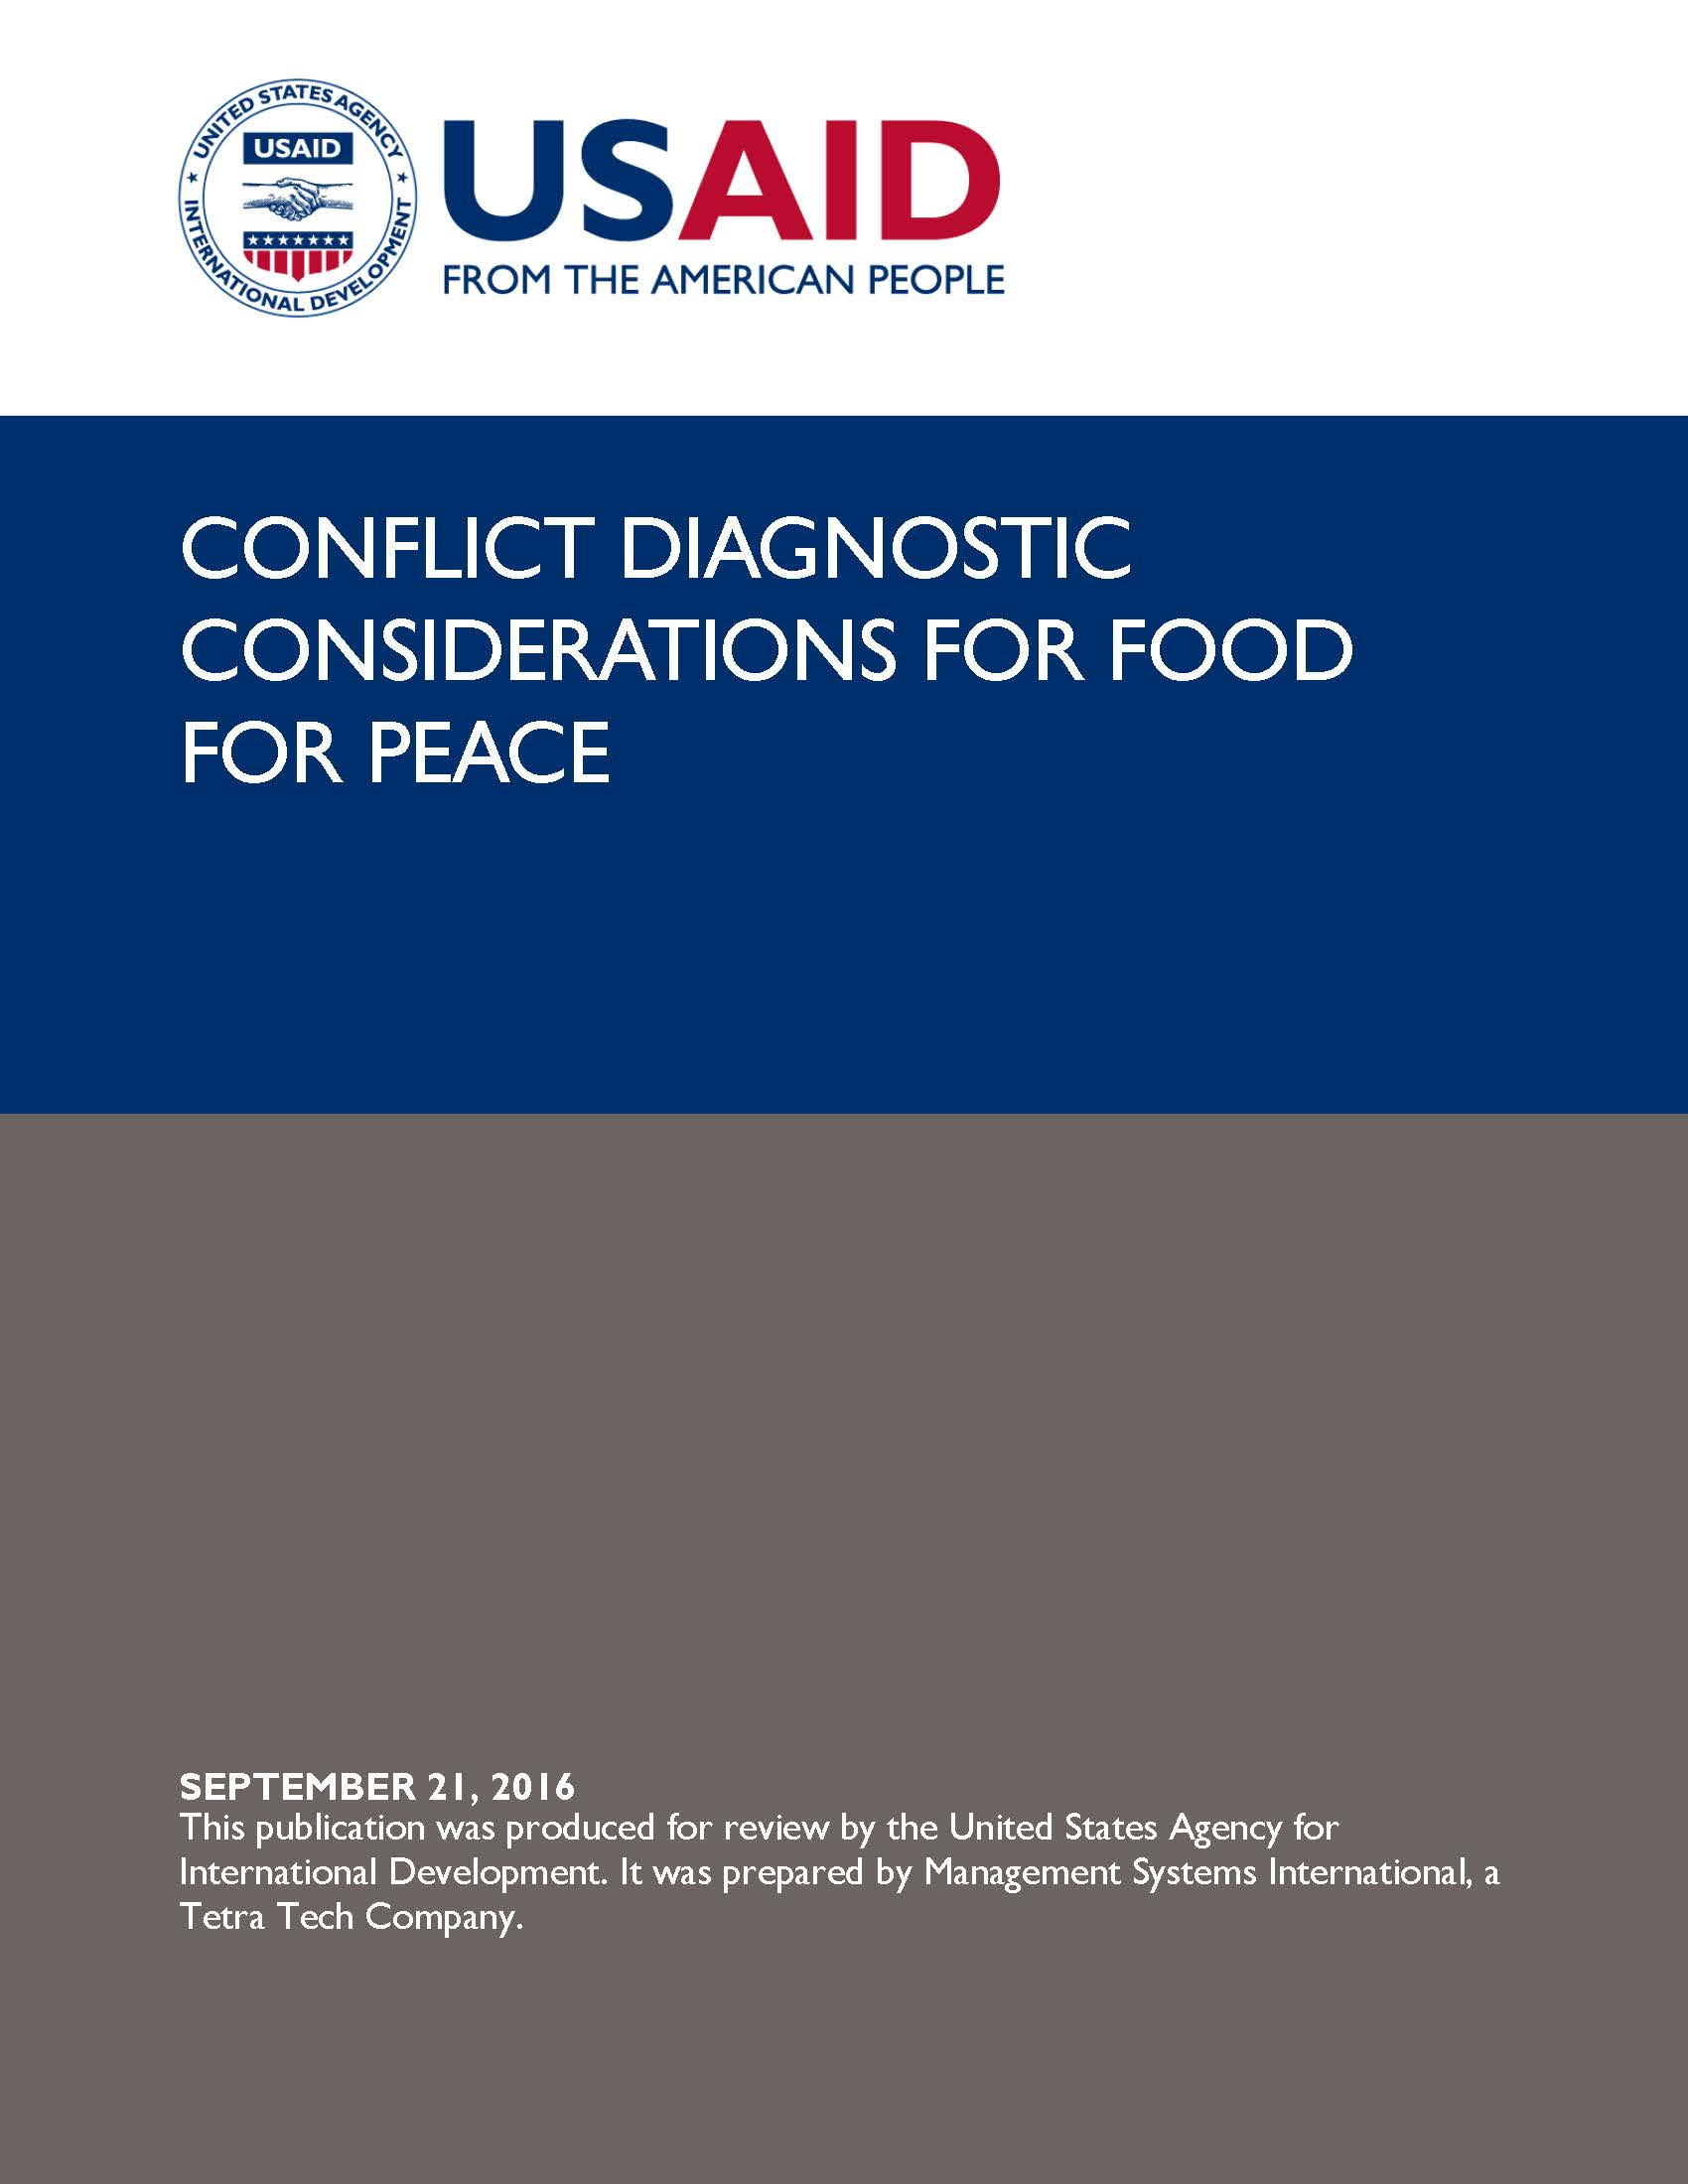 Conflict Diagnostic Considerations for Food for Peace